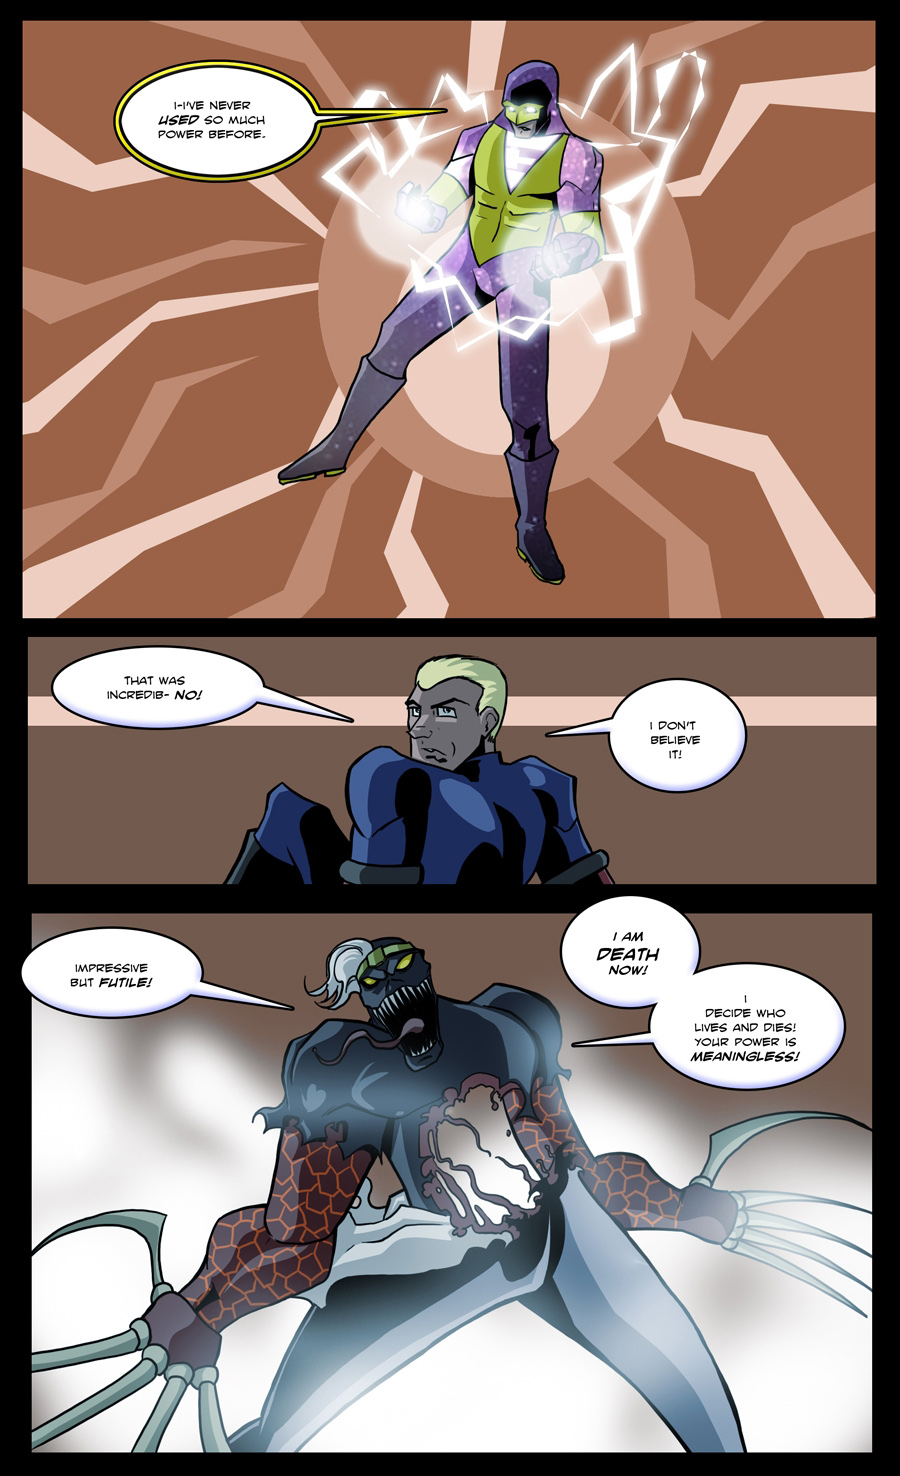 Crossoverkill - Chapter 6, Page 21